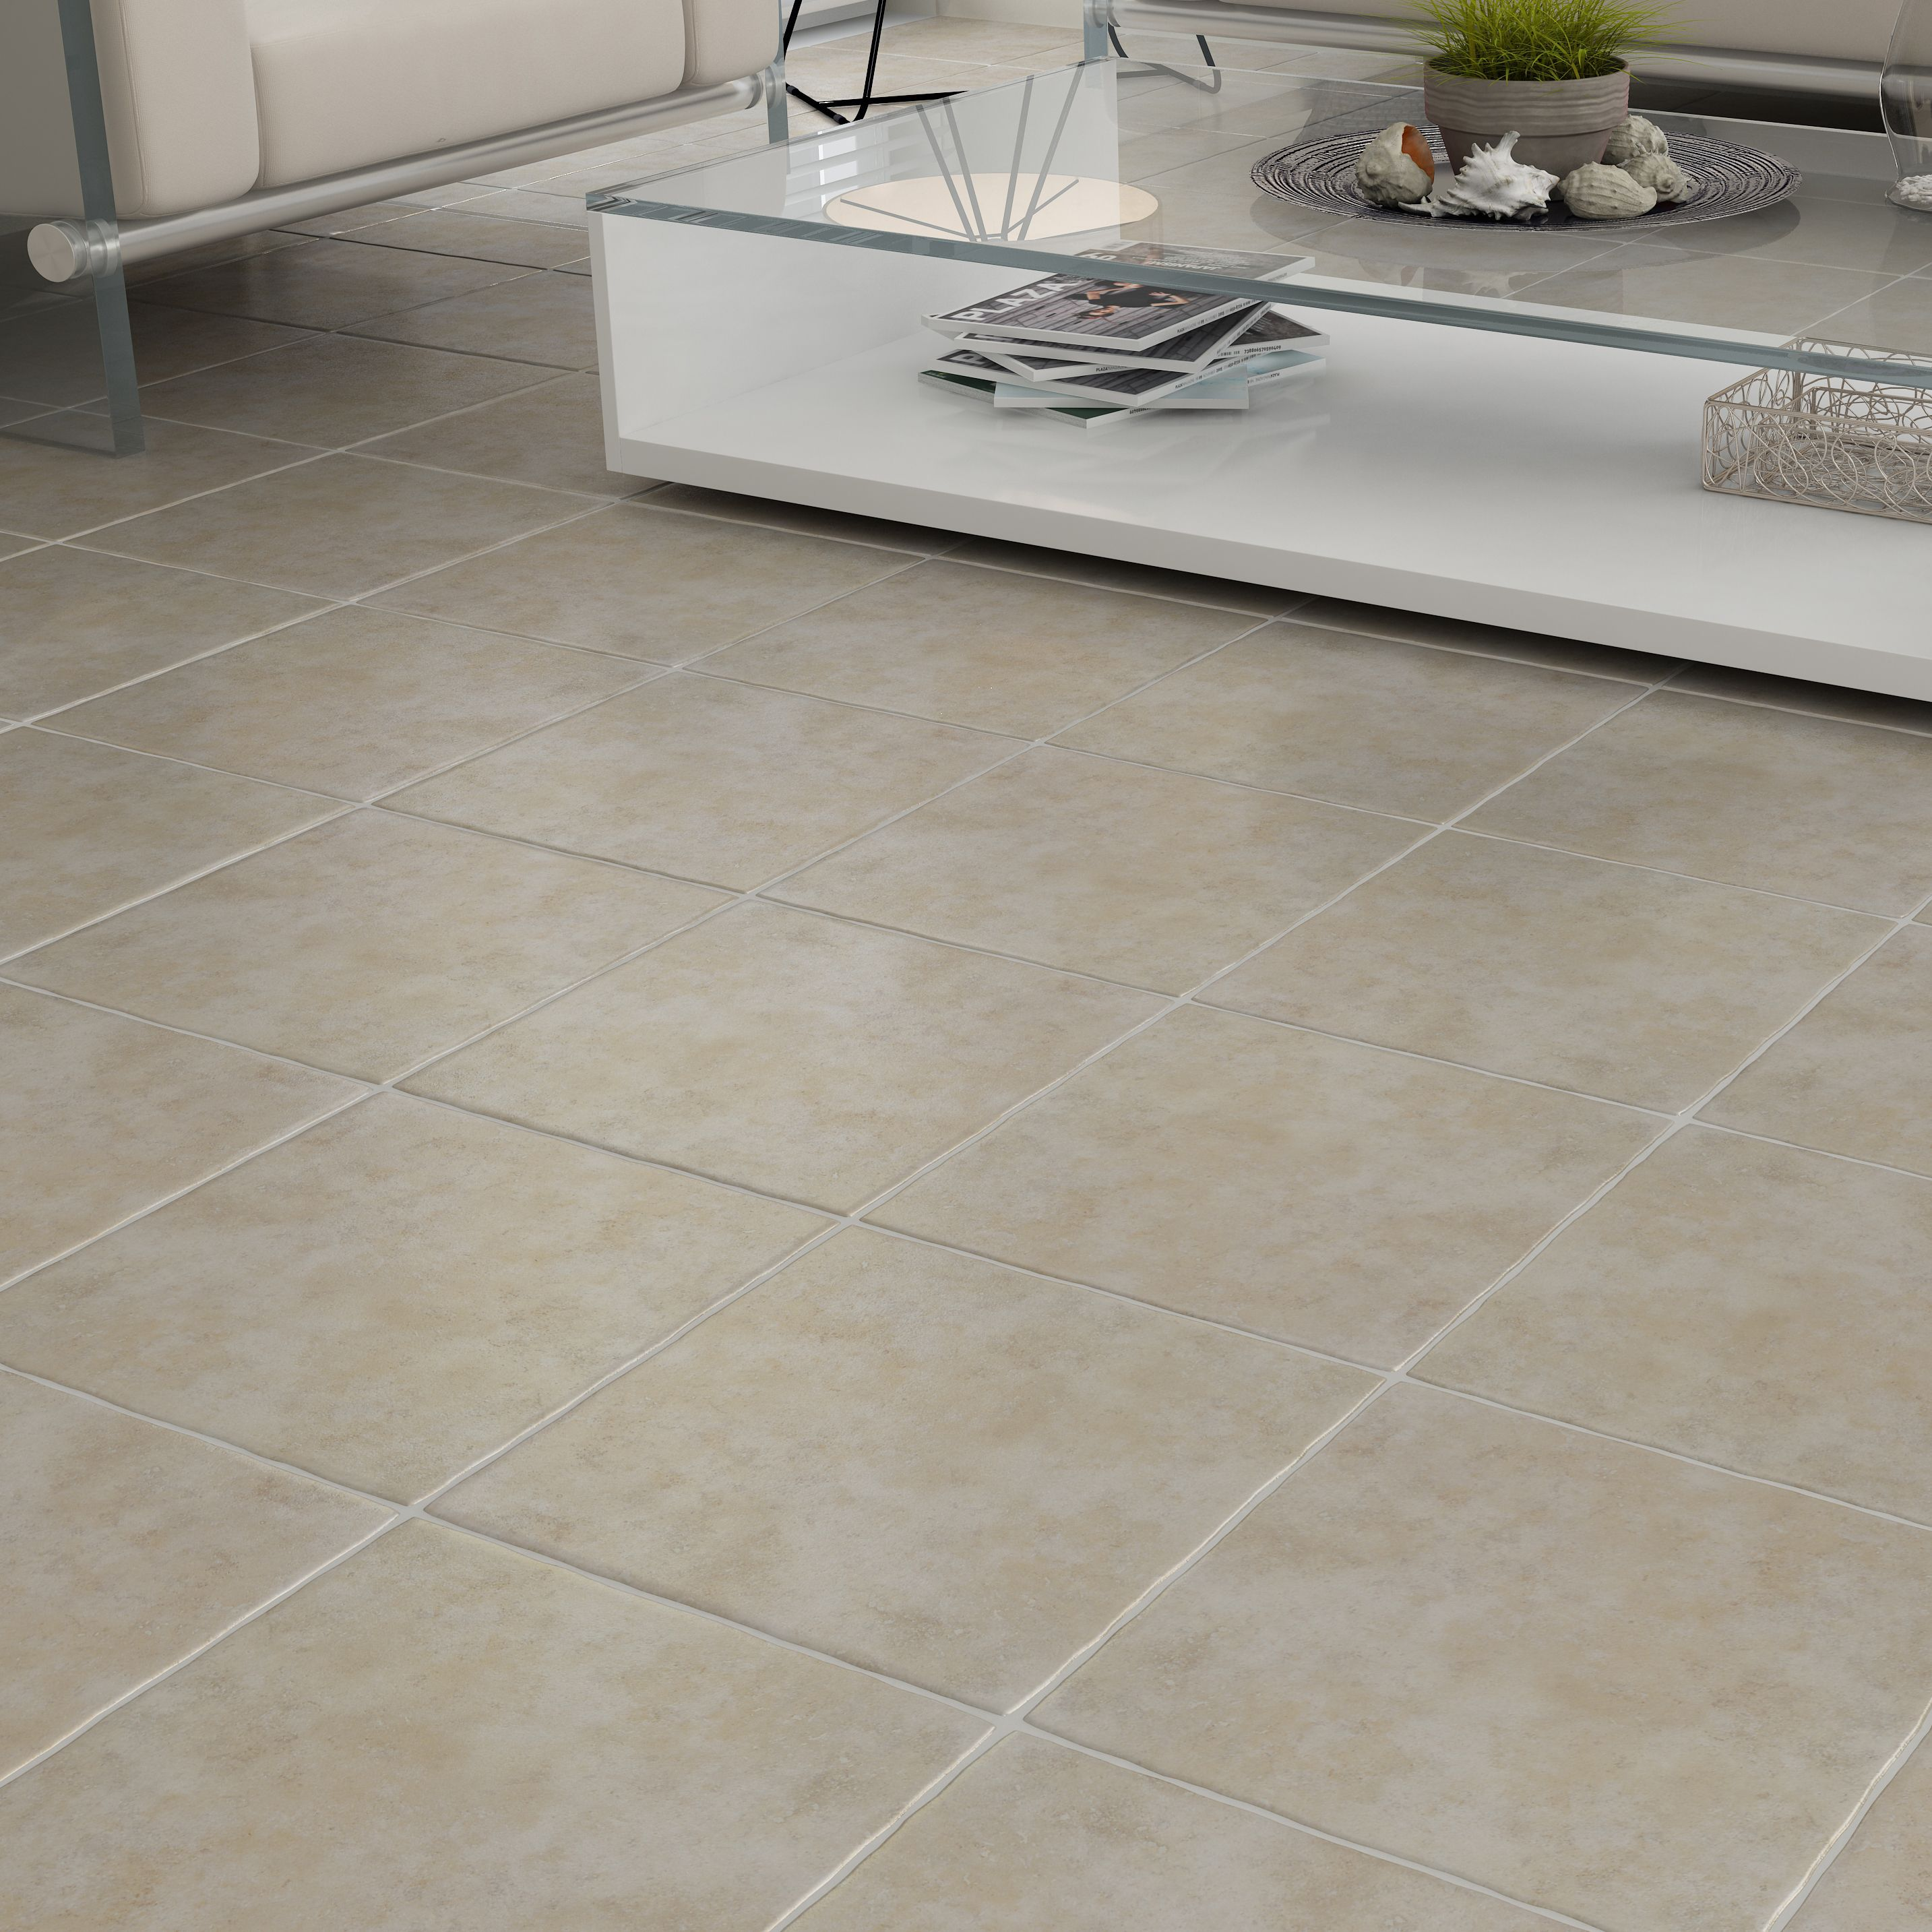 calcuta natural stone effect ceramic floor tile pack of 9 l330mm